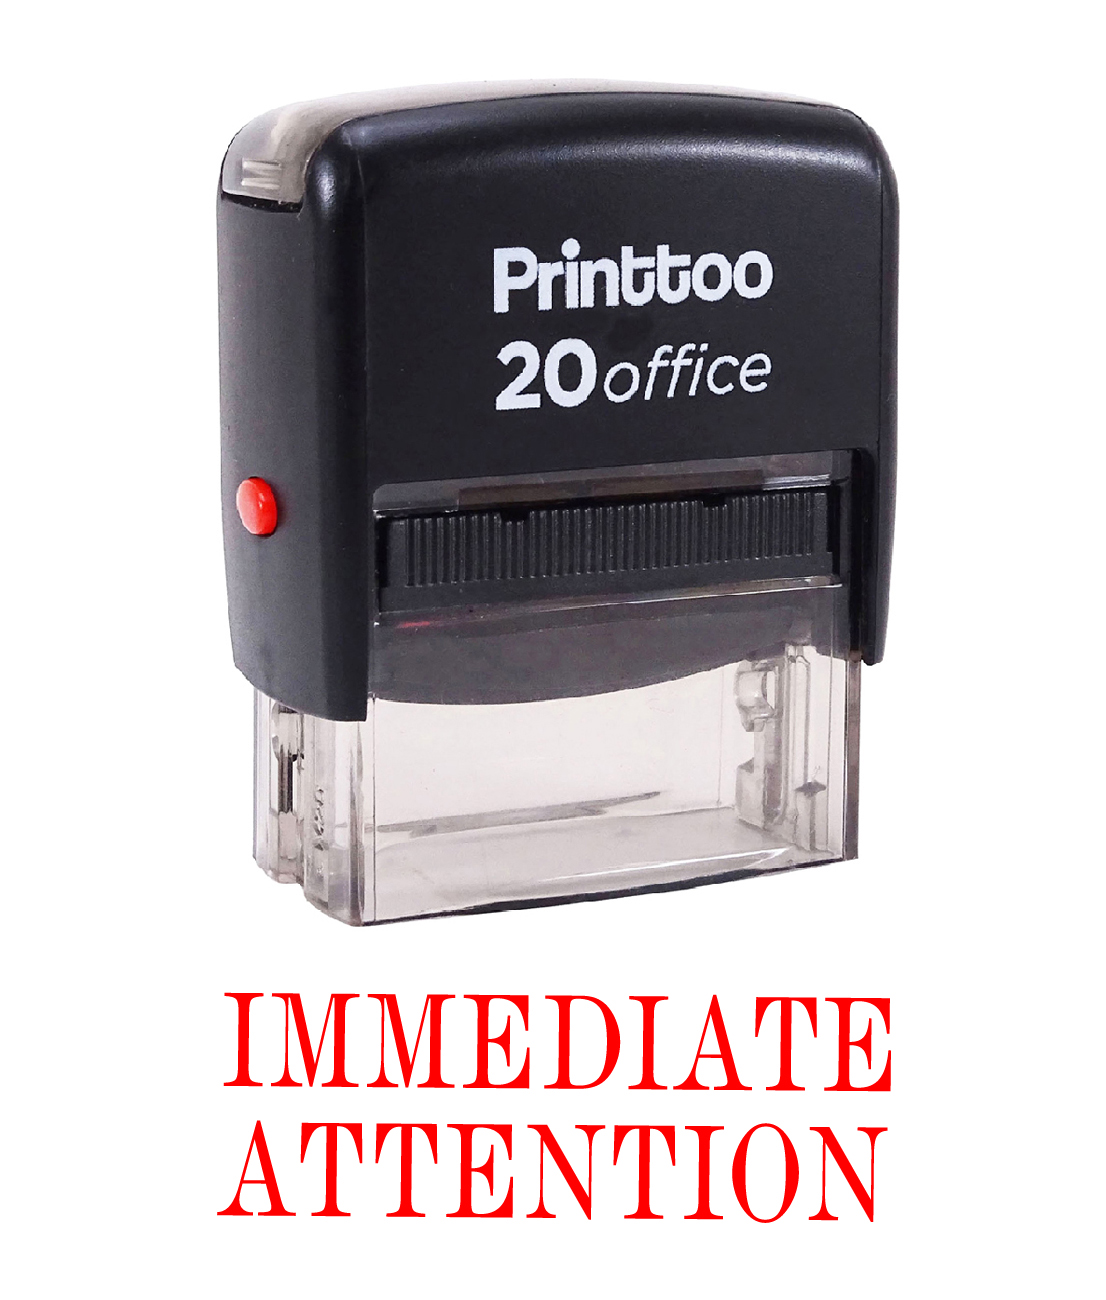 Details about  /Printtoo Rubber Stamp Office Stationary IMMEDIATE ATTENTION Self-AV7